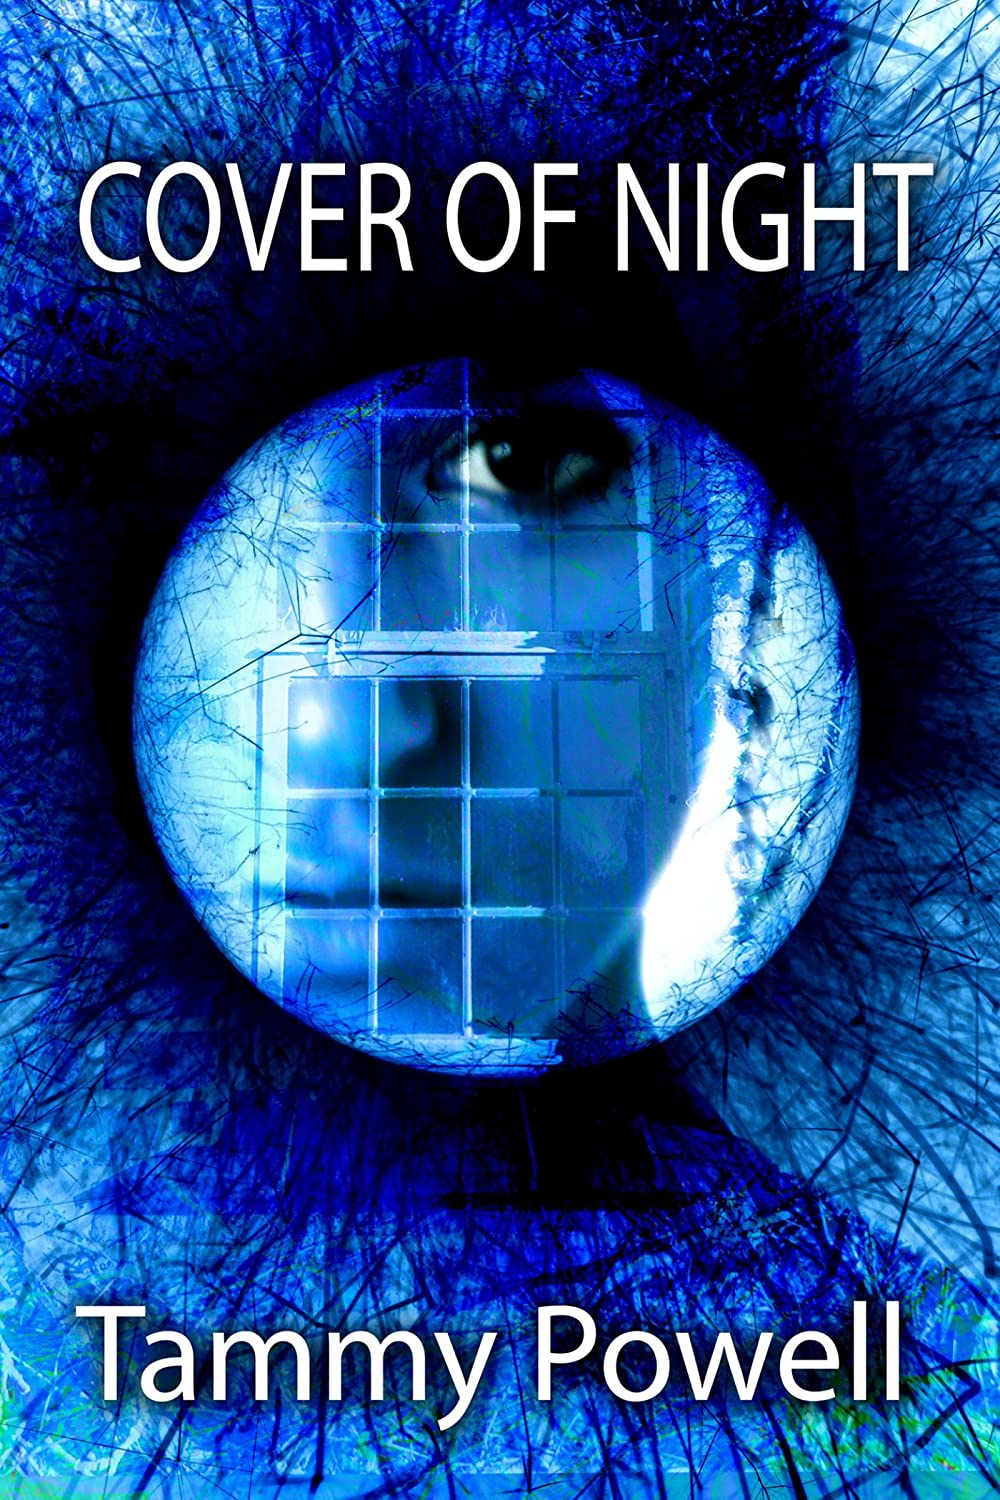 premade-exclusive-book-cover-130-ebook-1POWELL